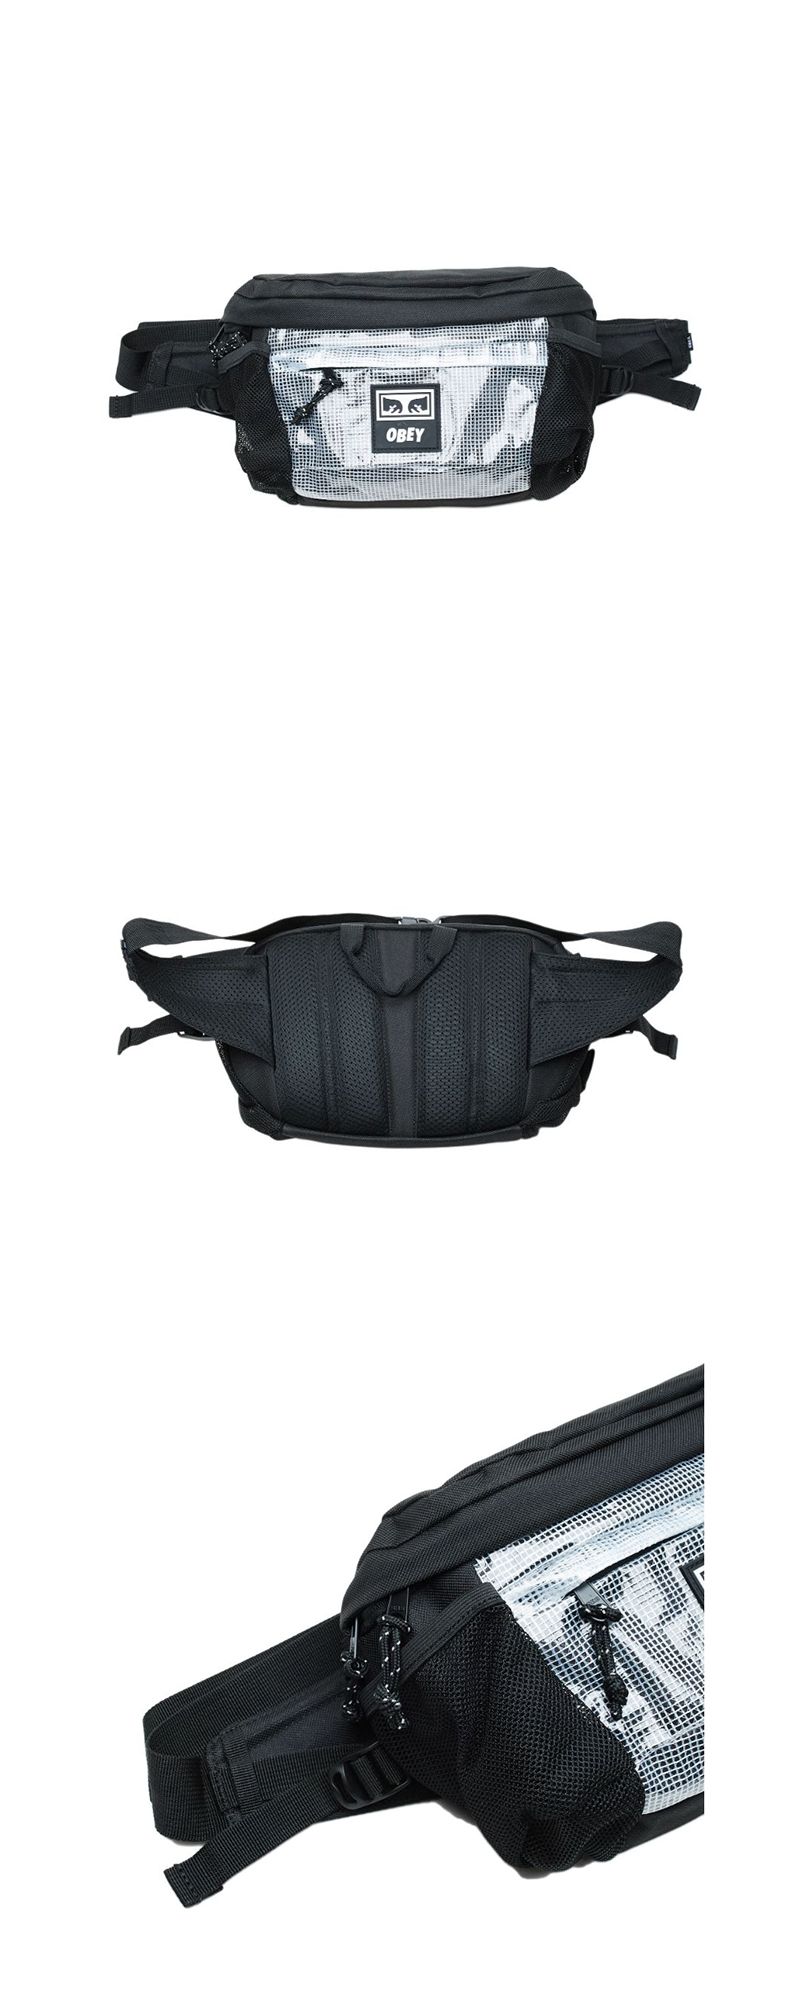 오베이 슬링백 CONDITIONS WAIST BAG II 100010116 BLACK